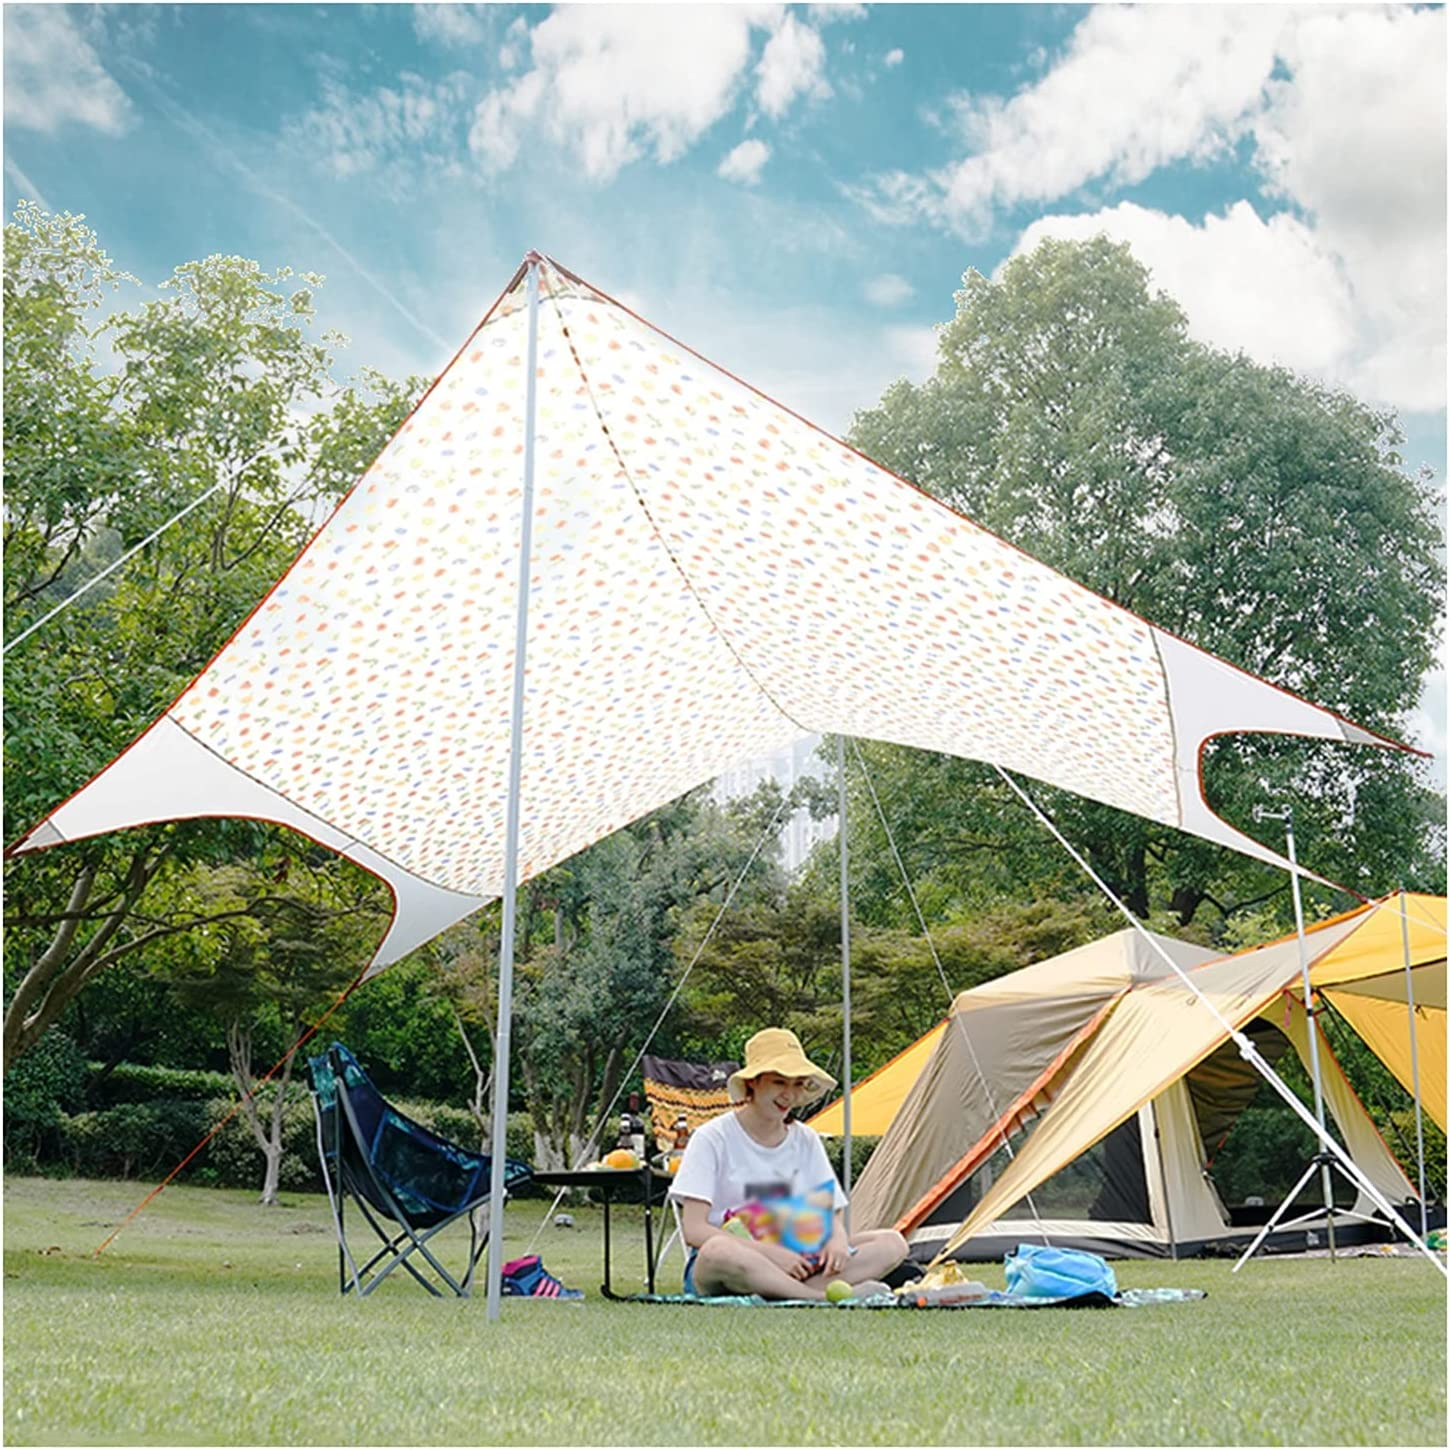 Waterproof Tarp Color Hexagon Camping Waterp Outdoor Canopy 40% OFF Cheap Sale Fashion Tent